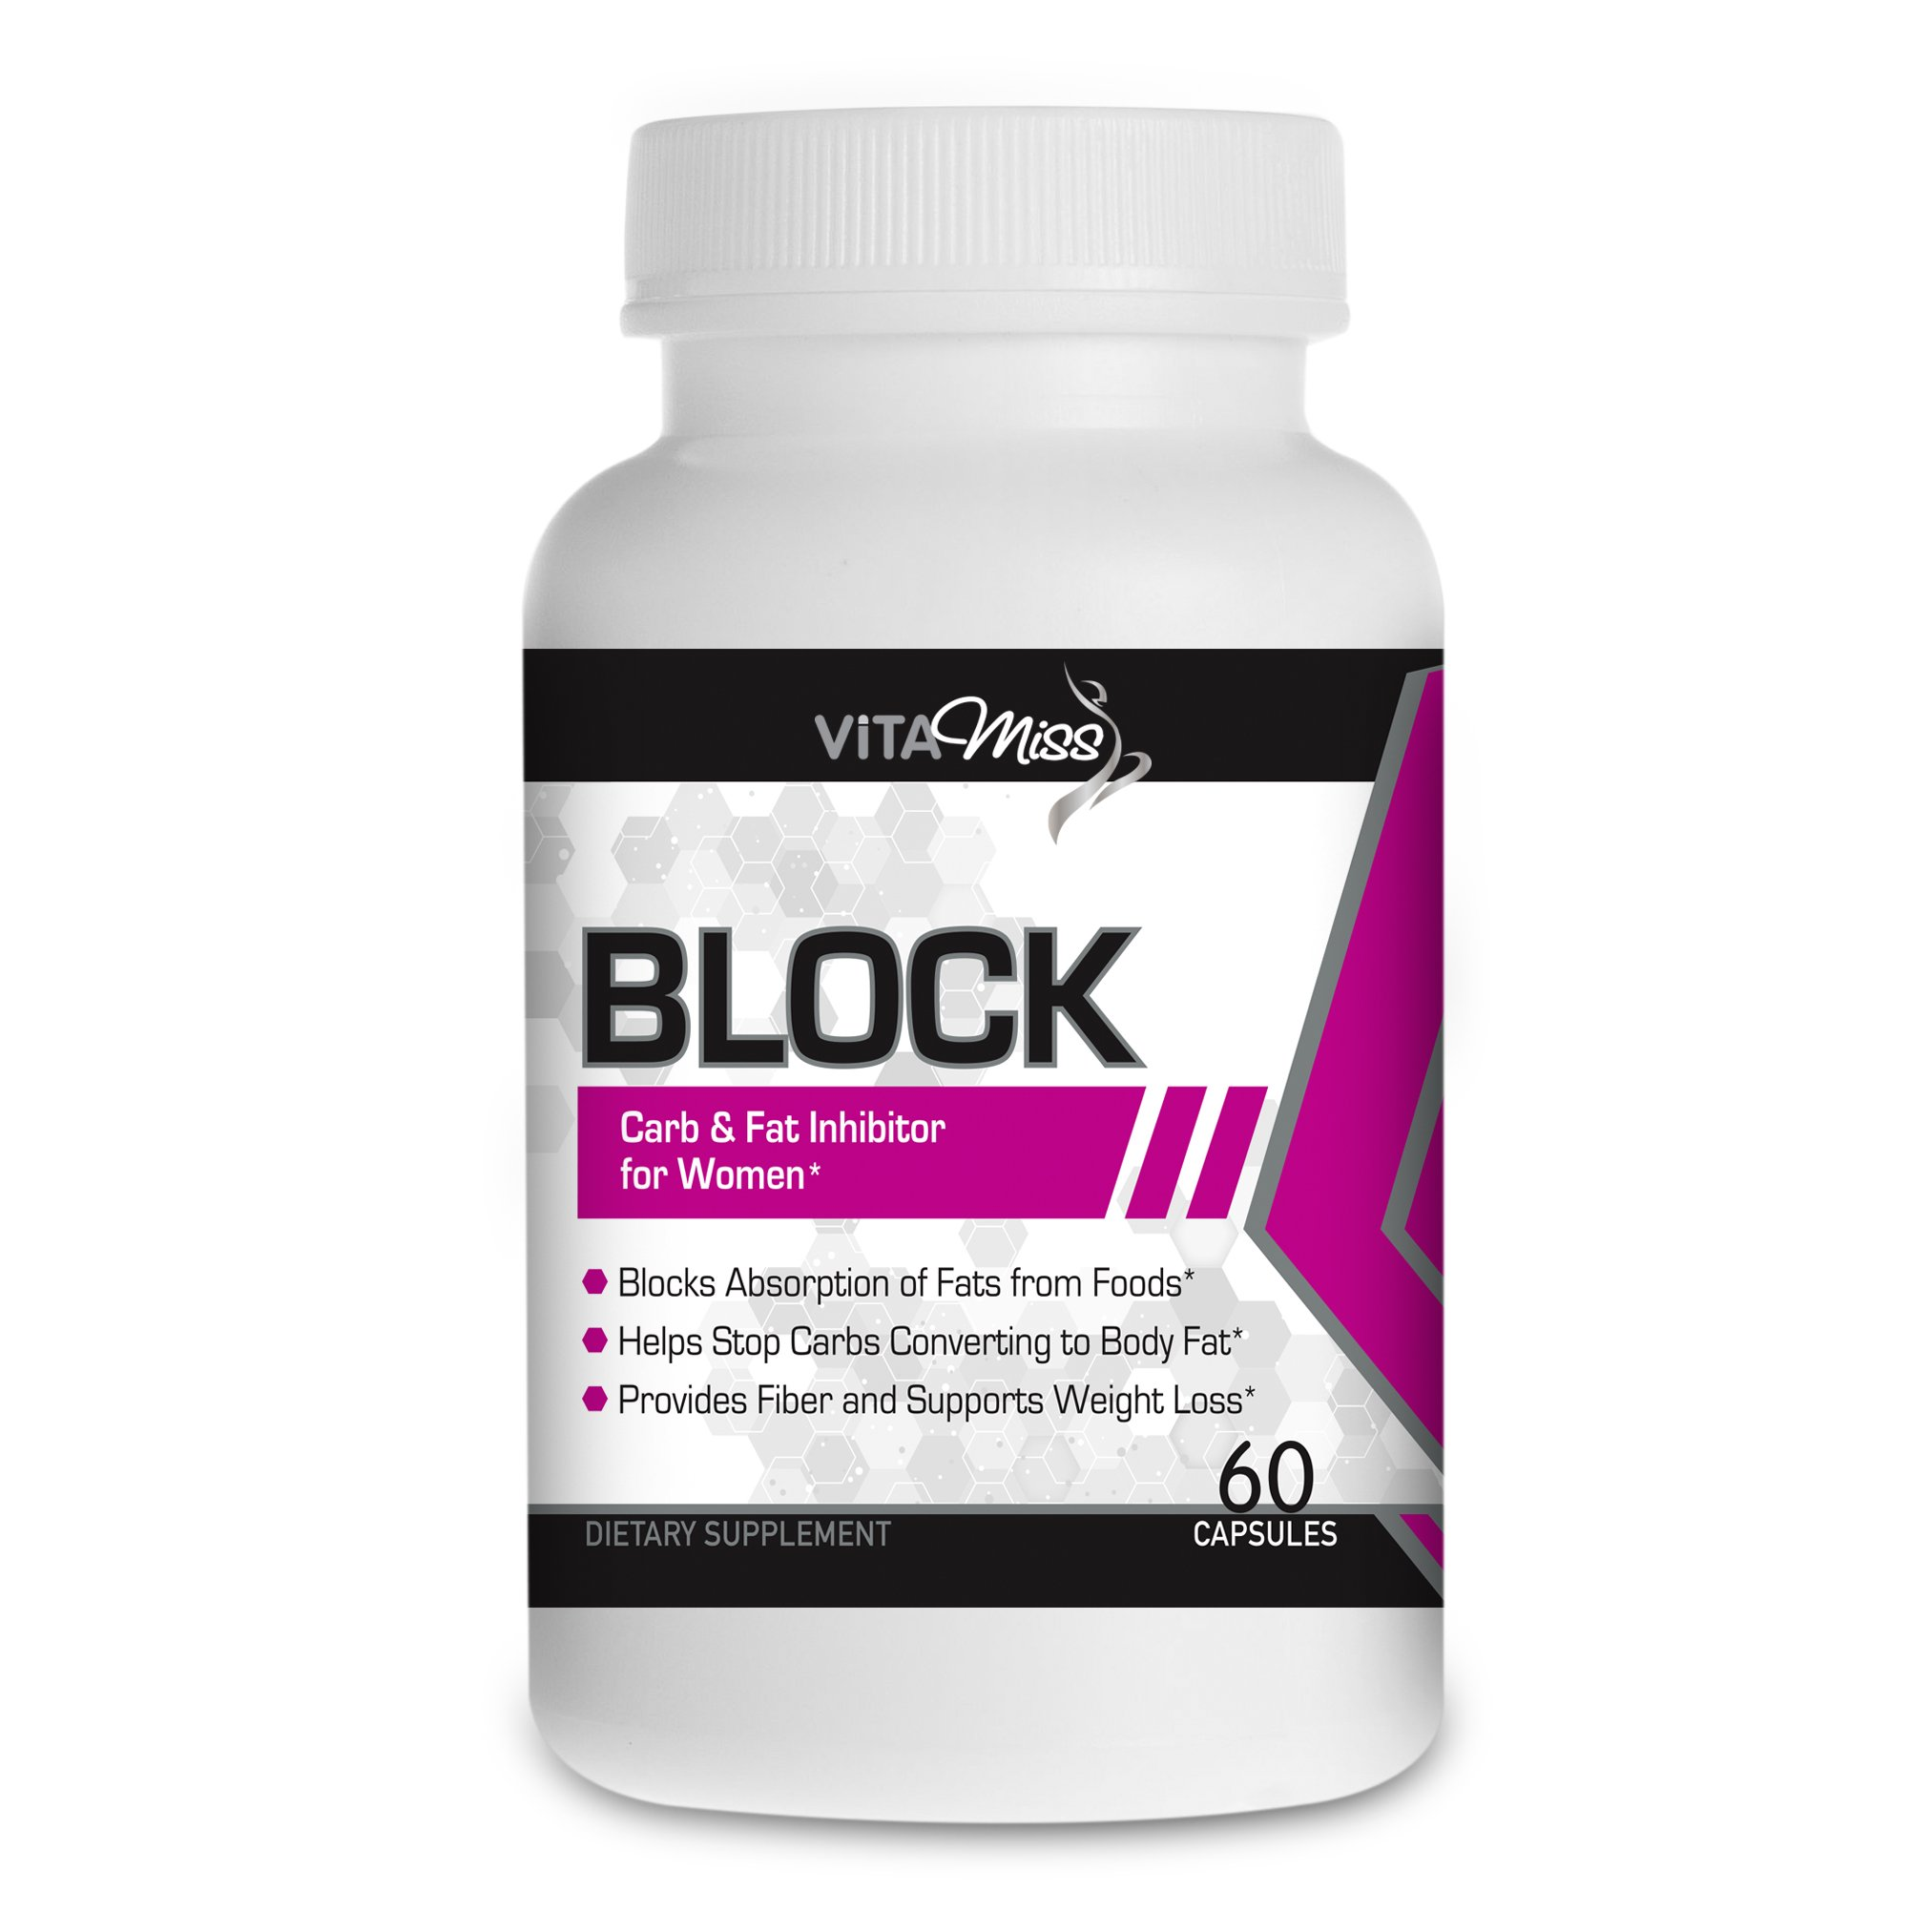 Vitamiss Block -Dual Action Fat & Carbohydrate Intercept Weight Loss Supplement Designed for Women! Block Your Fat and Carb Absorption while Suppressing Your Appetite!